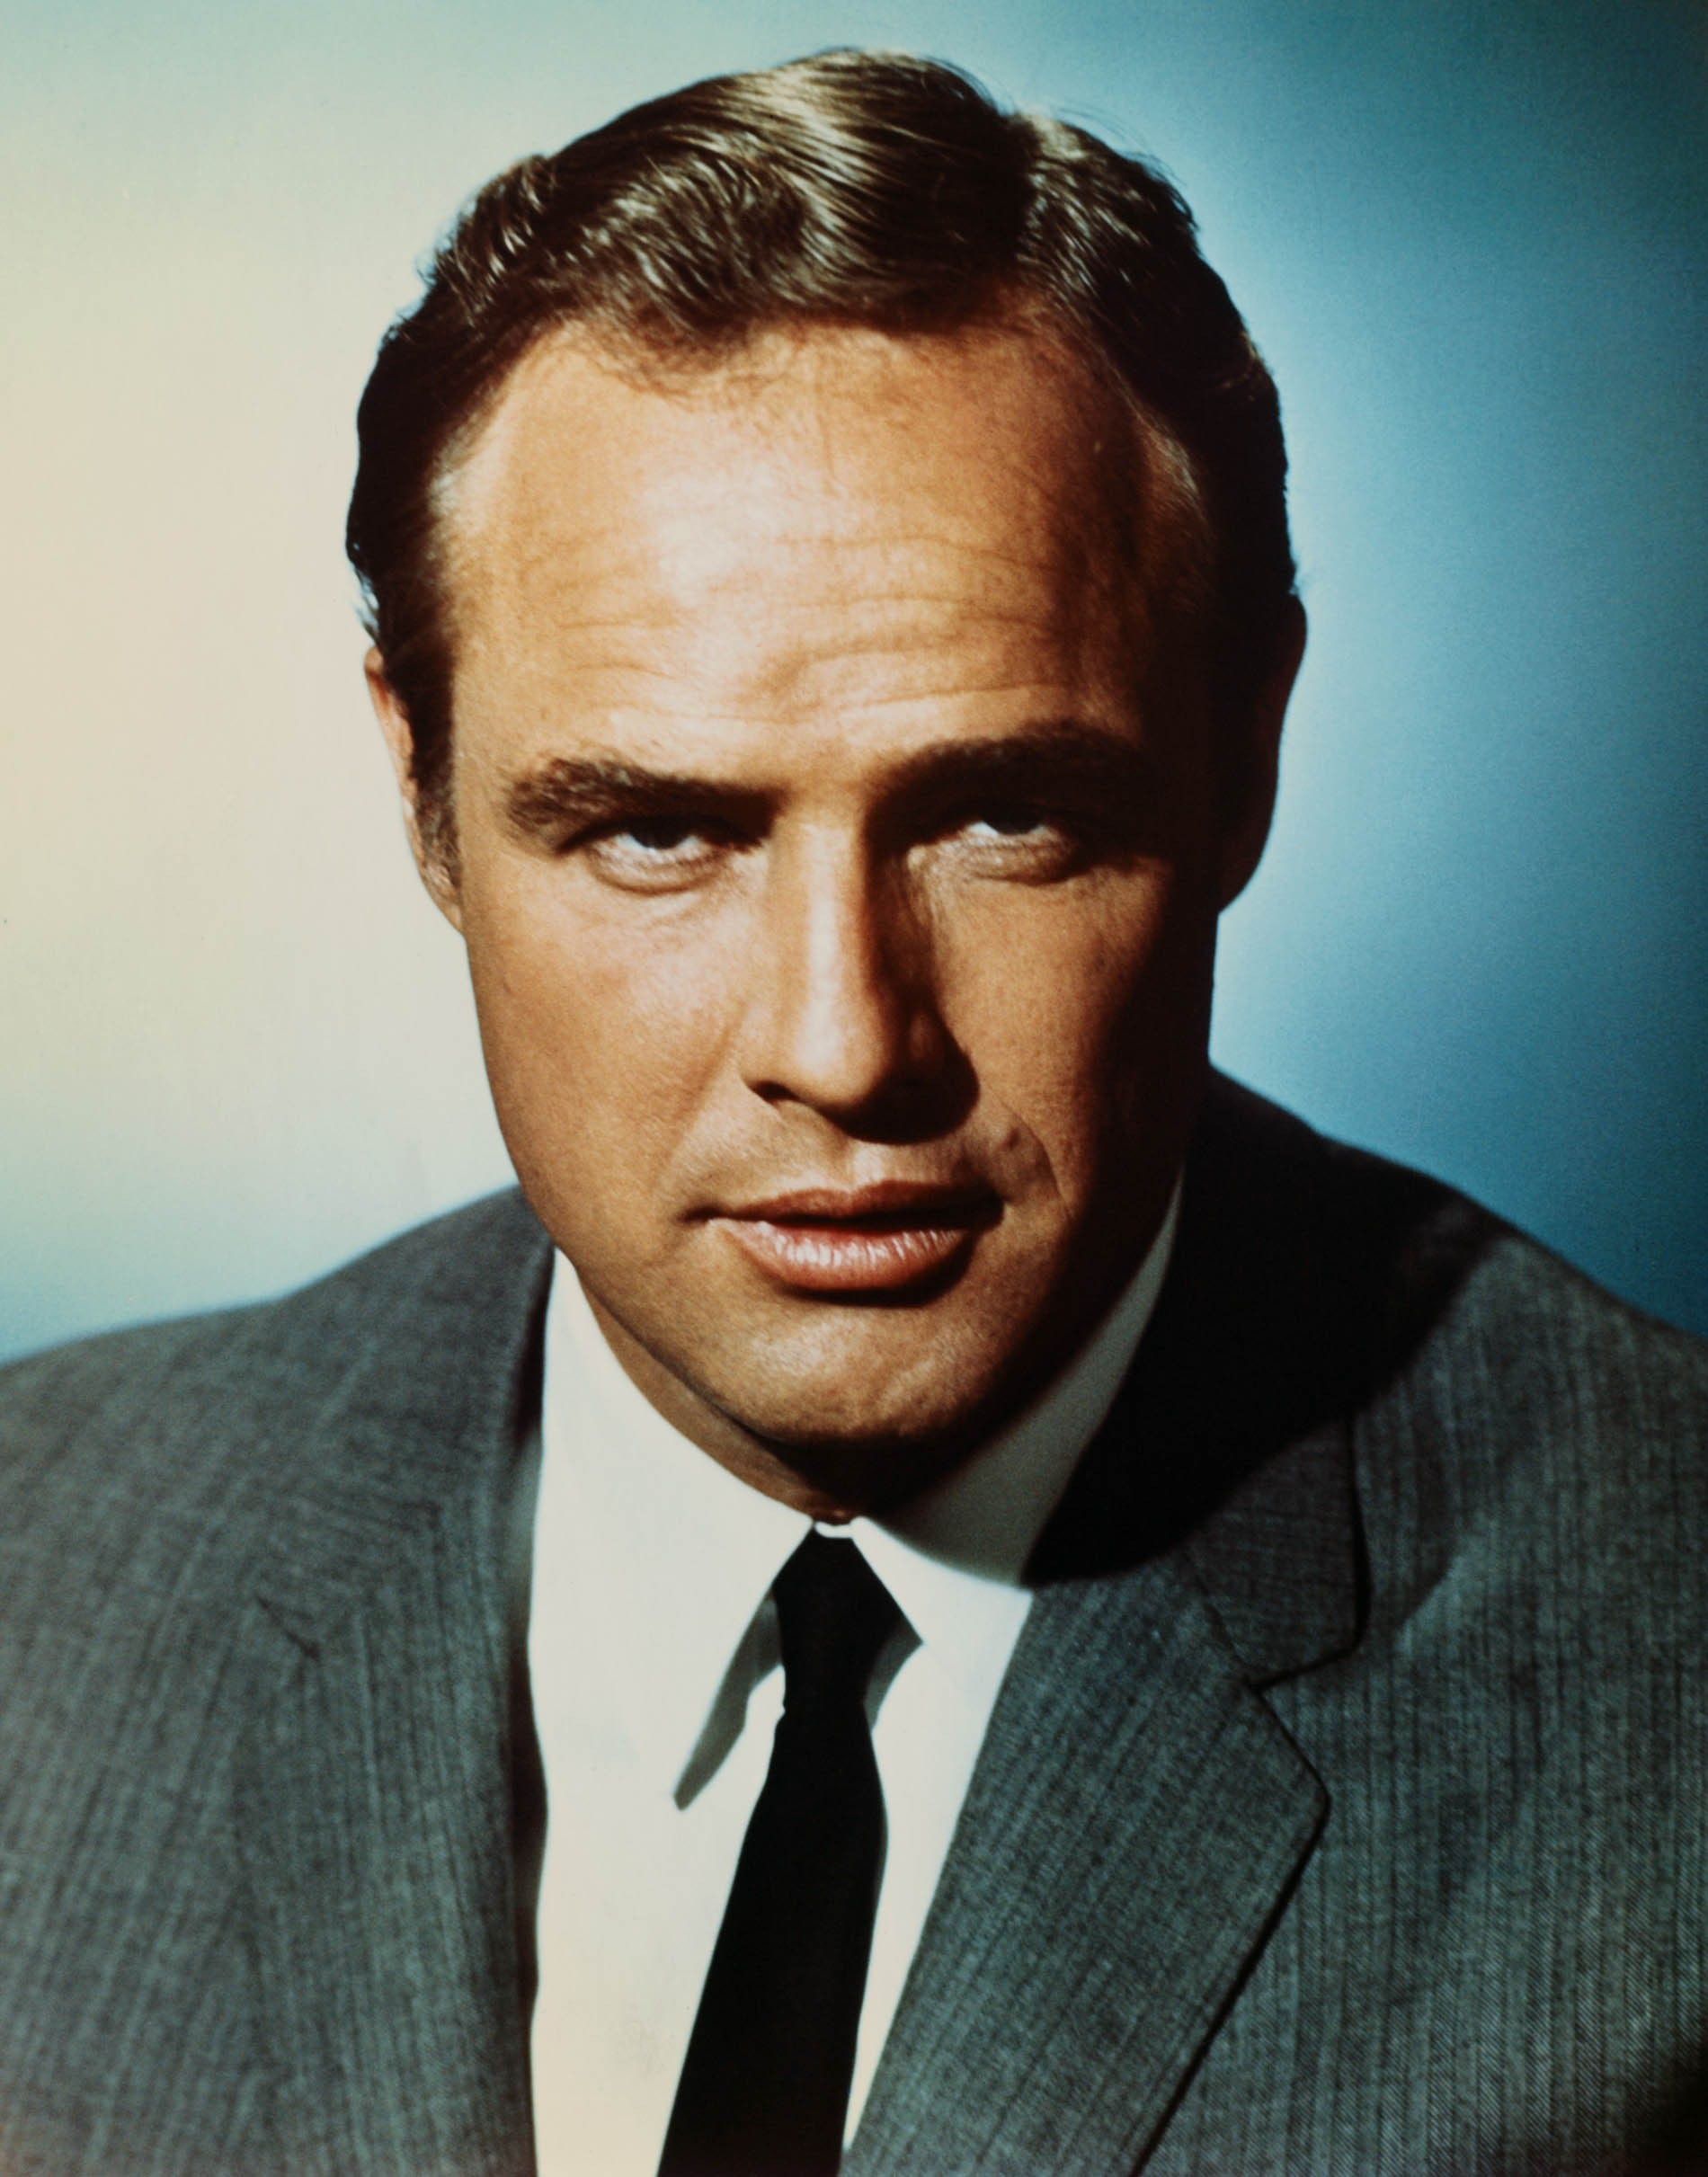 Marlon Brando For mobile